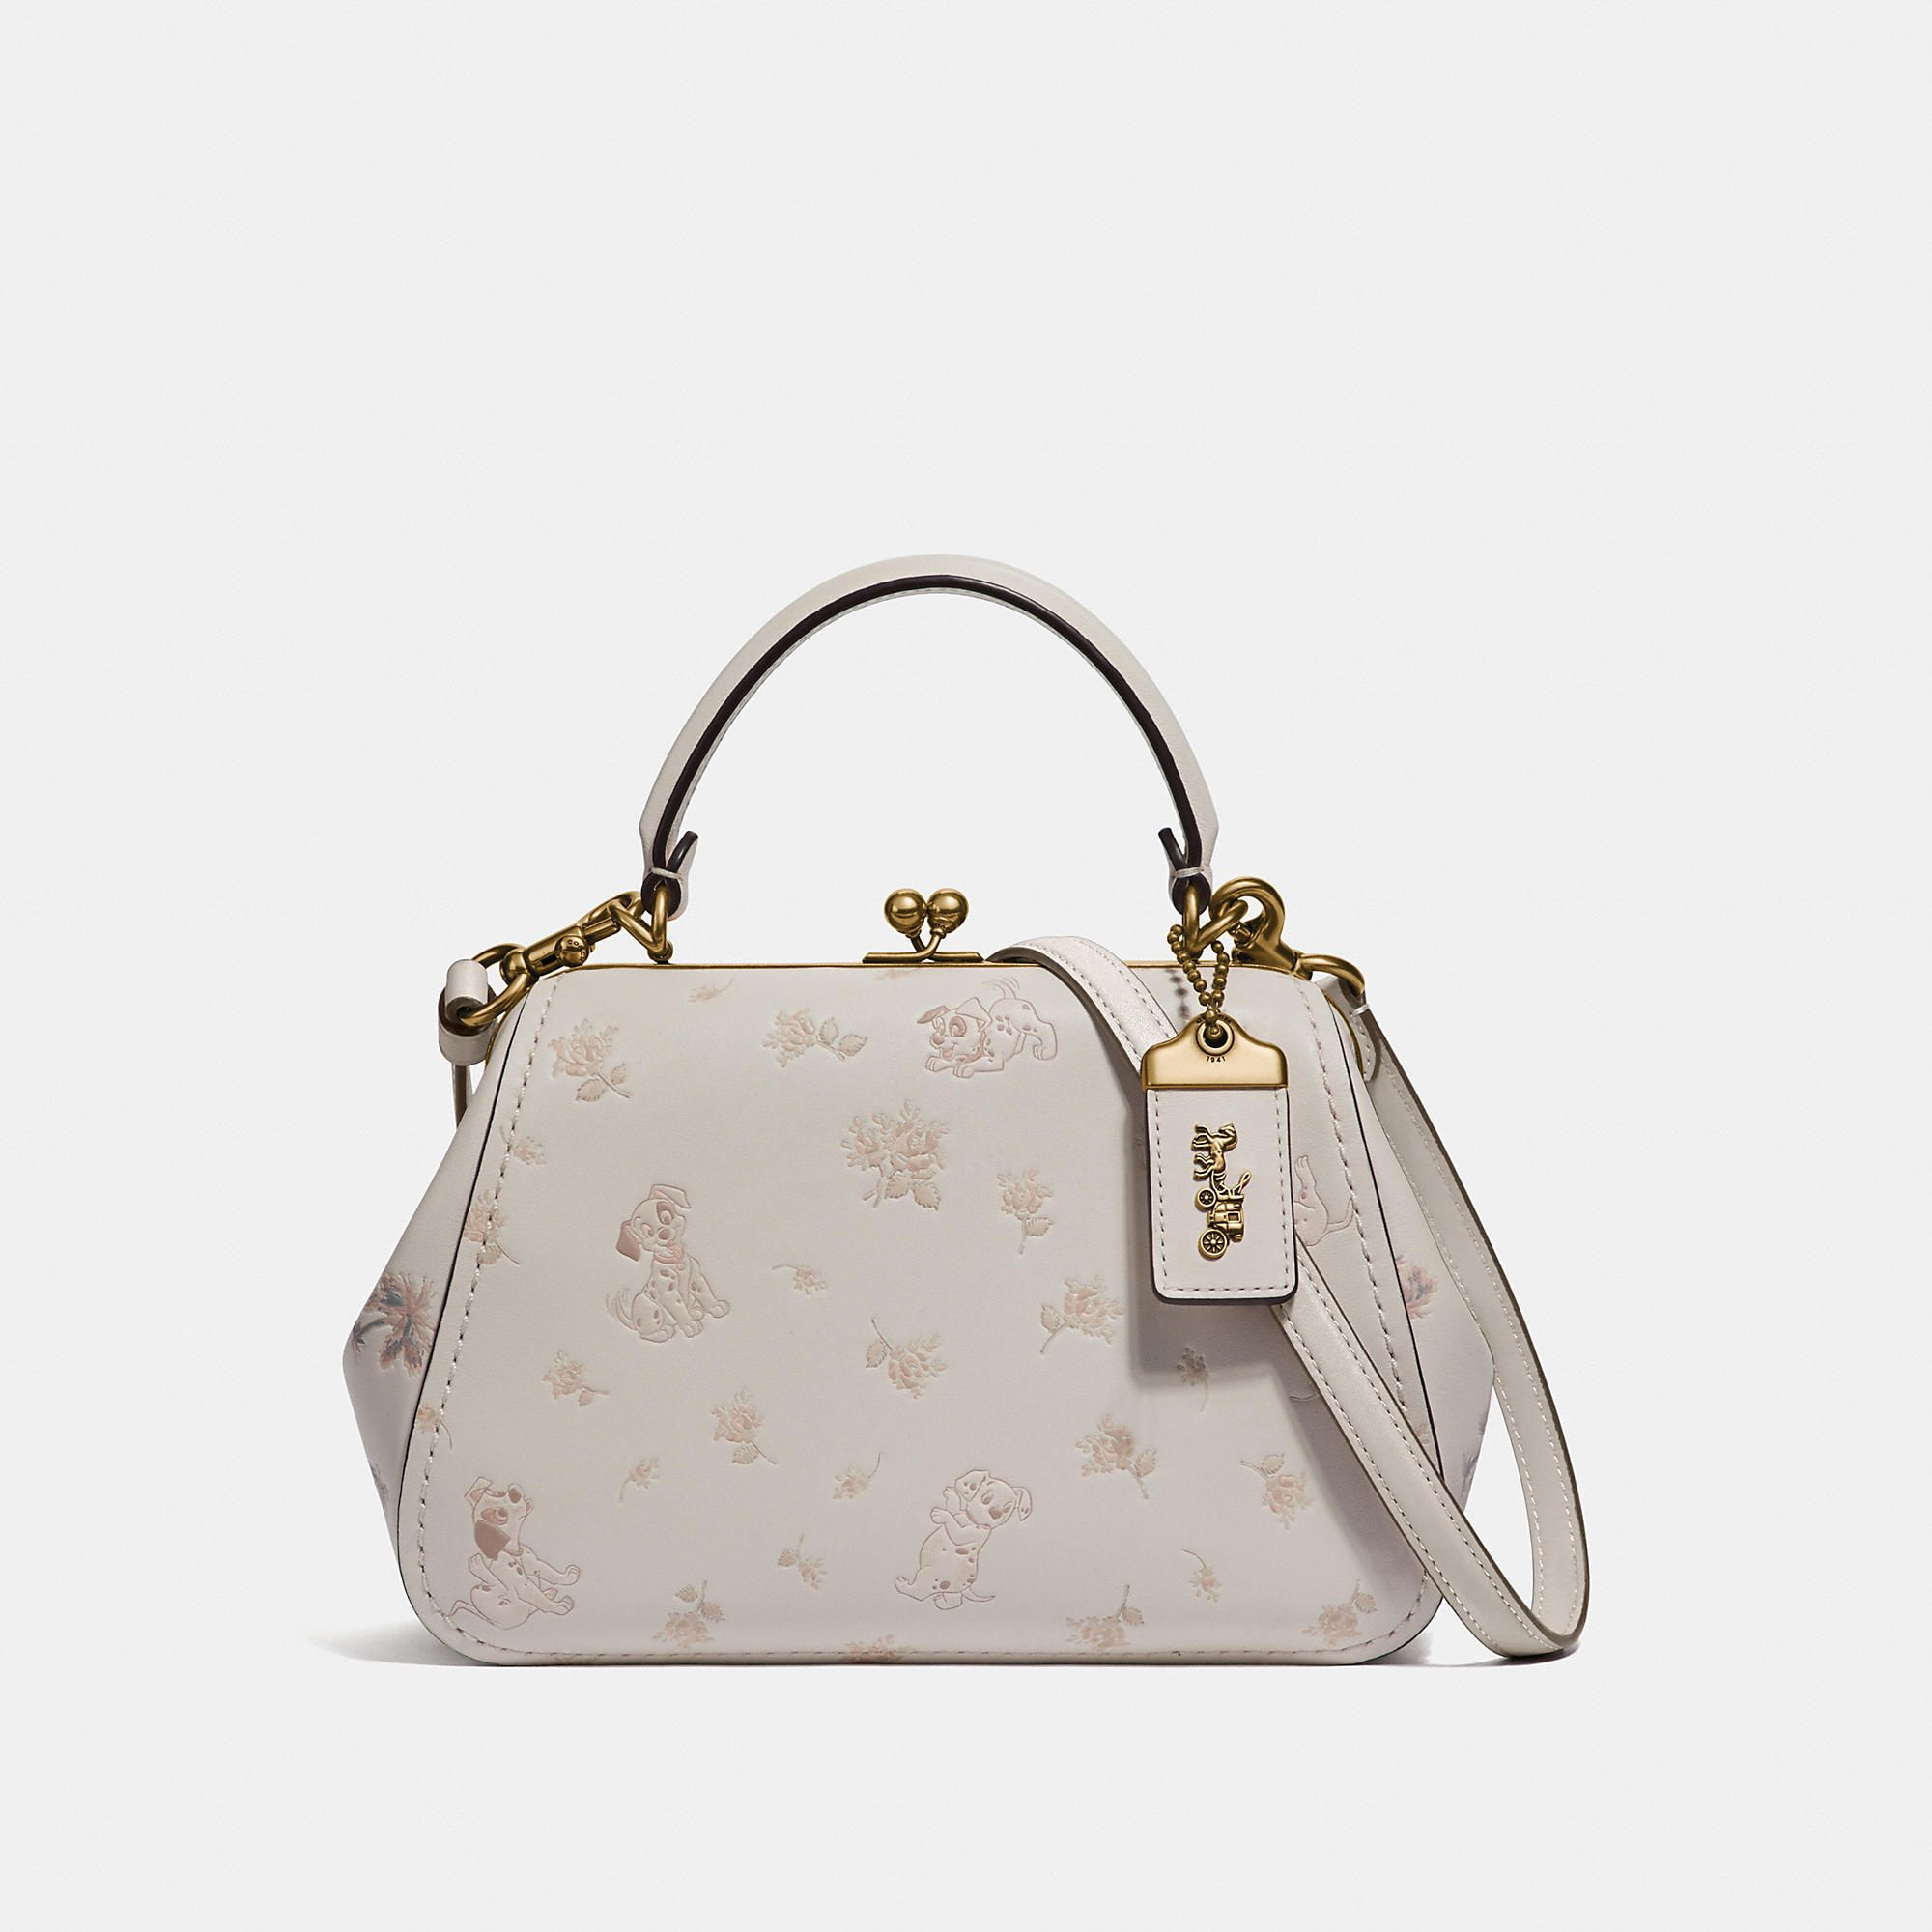 Disney X Coach Frame Bag 23 With Dalmatian Floral Print Products